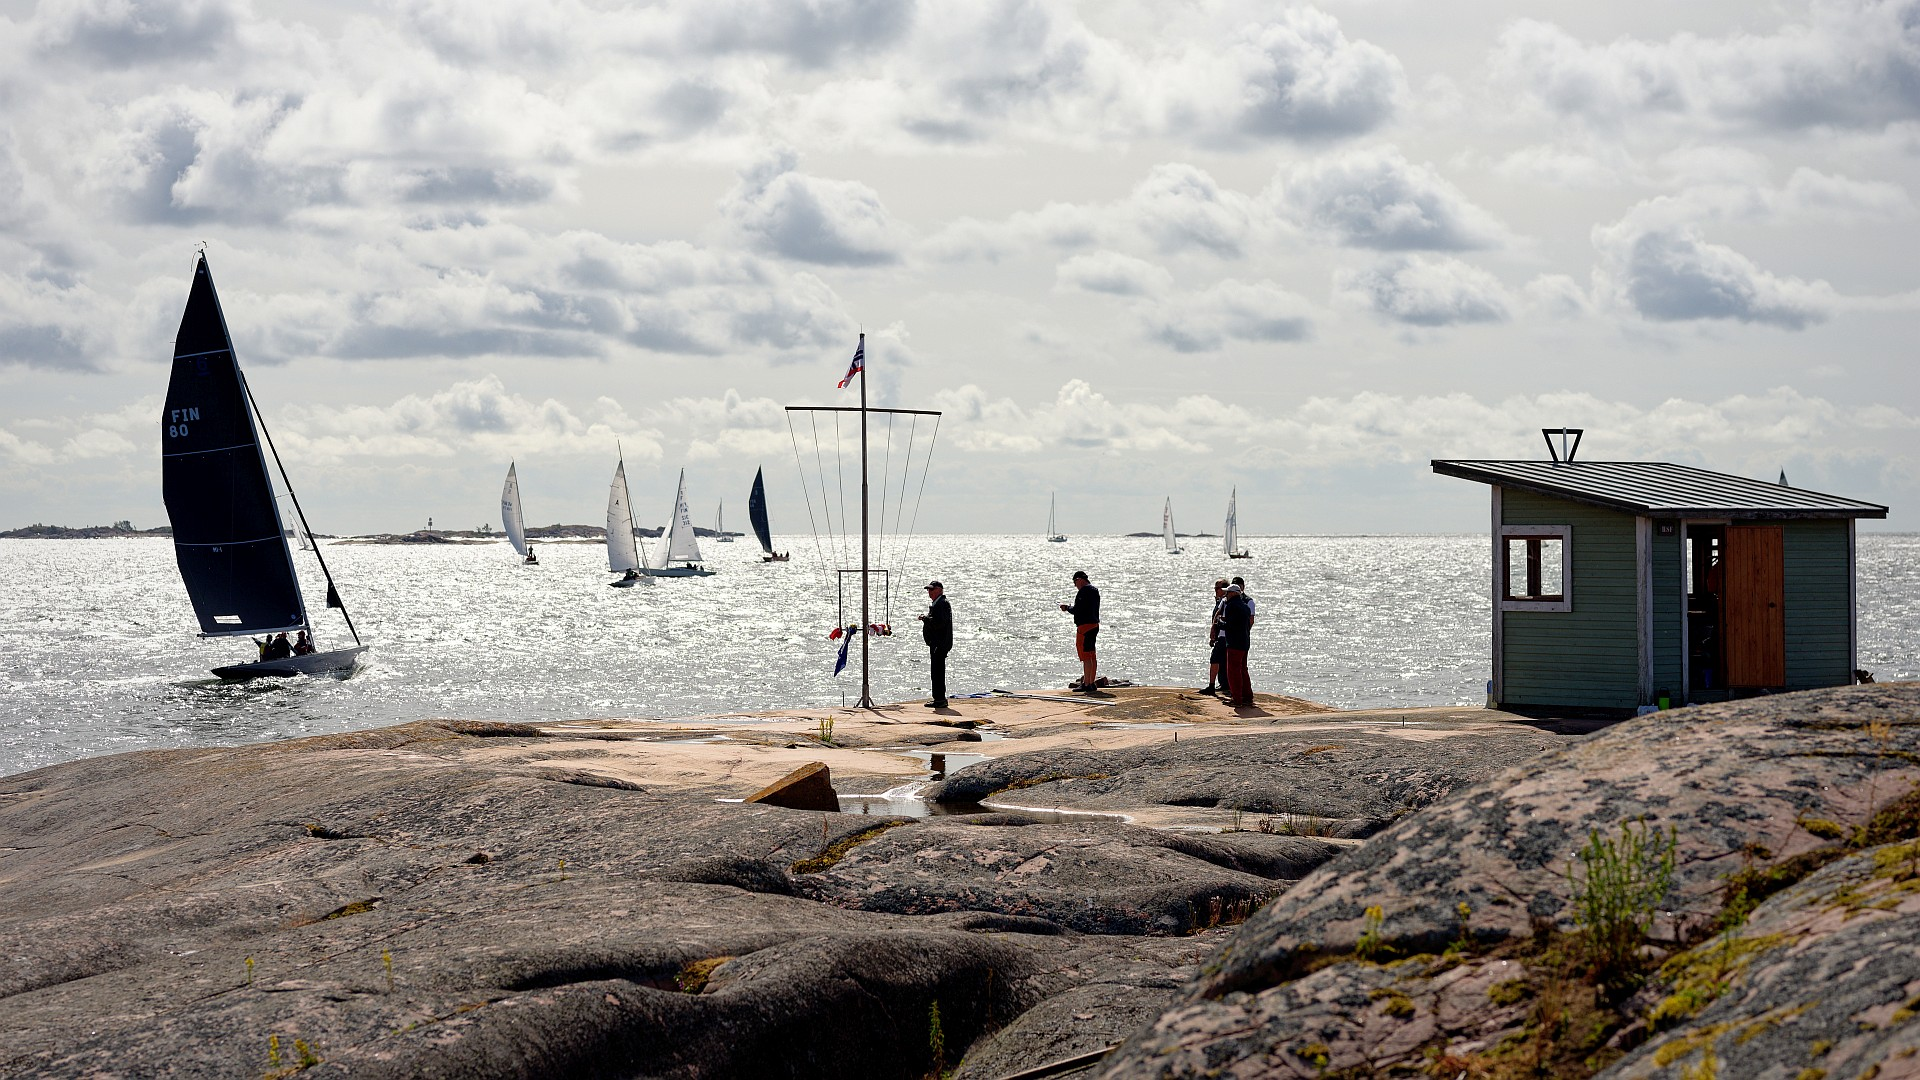 Hangö Classics is a regatta, organized by Hangö Segelförening HSF, that is in 2020 replacing the Hangö Regatta which would have been too big with regards to the Corona restrictions. The 8mR, 6mR, Int5mR, 5.5M, Dragon, A-boat, Hai and Nordic Folkboat are racing on a course from year 1932 with just some modifications. Photos (110) […]